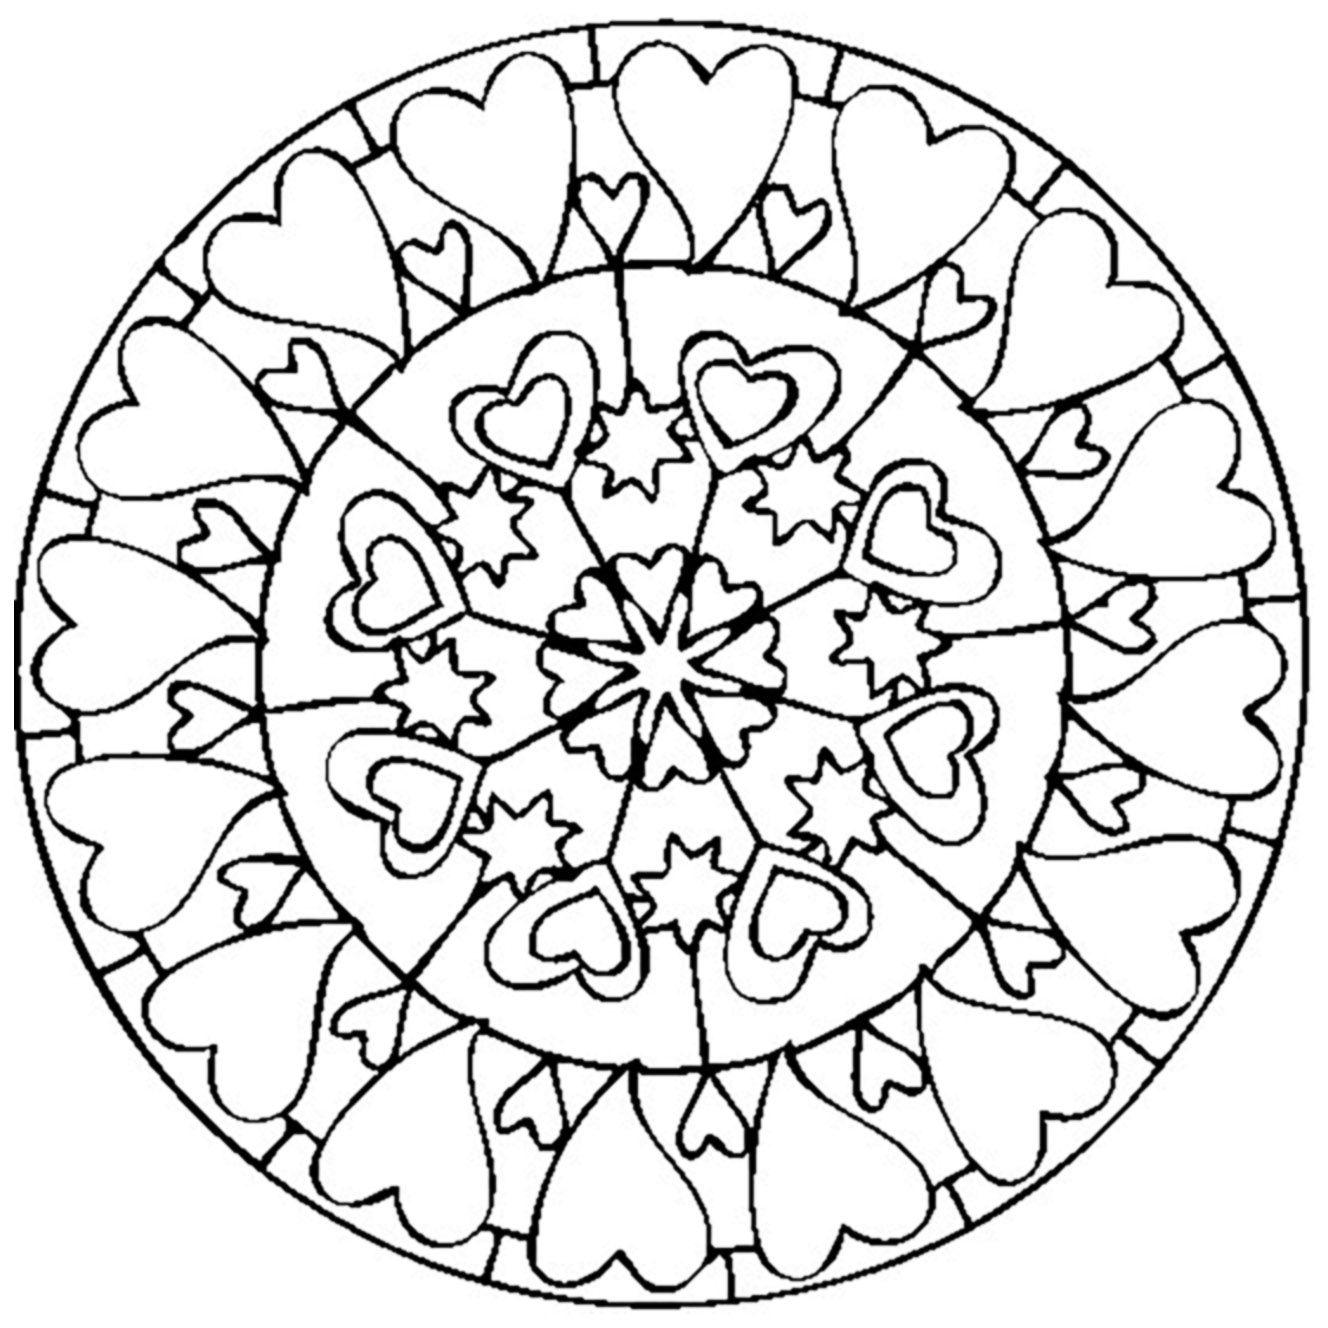 mandala coloring page with